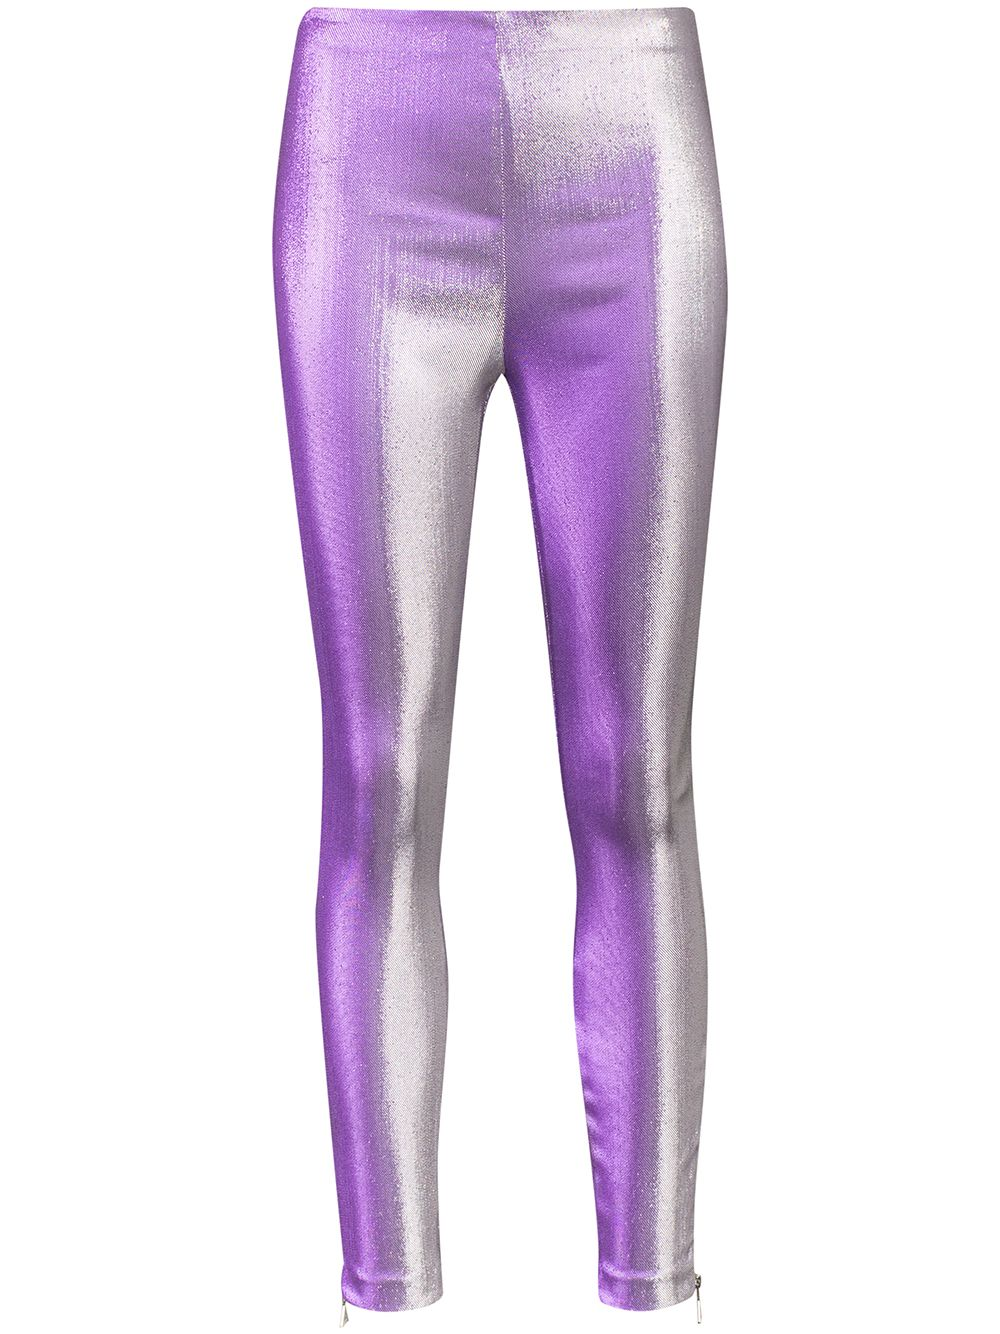 Iridescent Effect Leggings